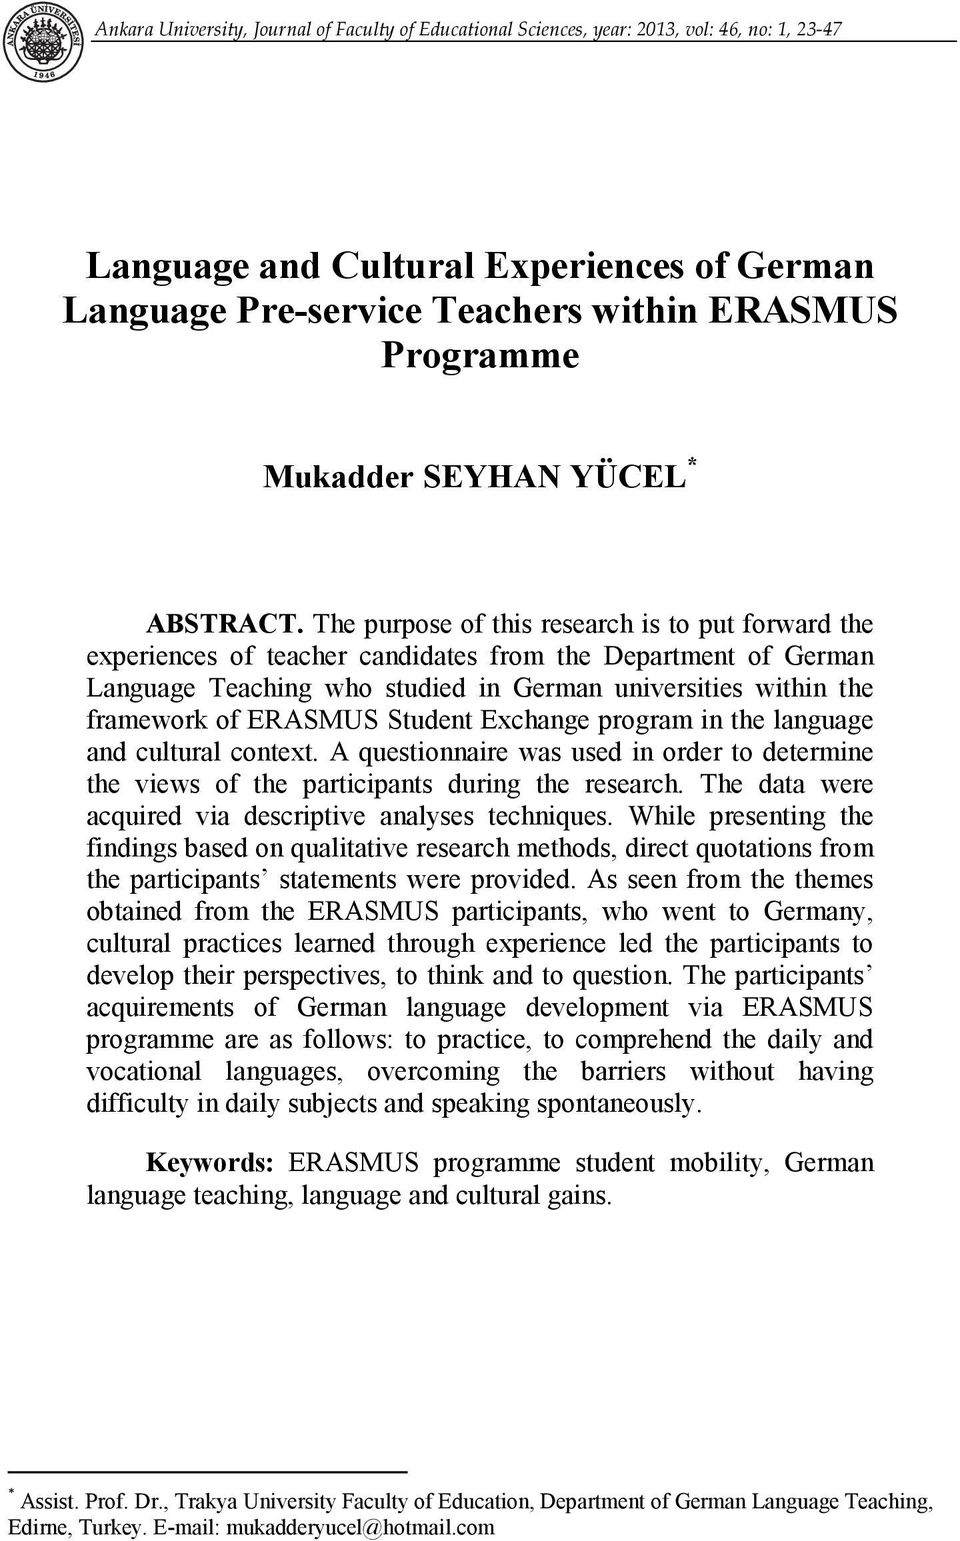 The purpose of this research is to put forward the experiences of teacher candidates from the Department of German Language Teaching who studied in German universities within the framework of ERASMUS